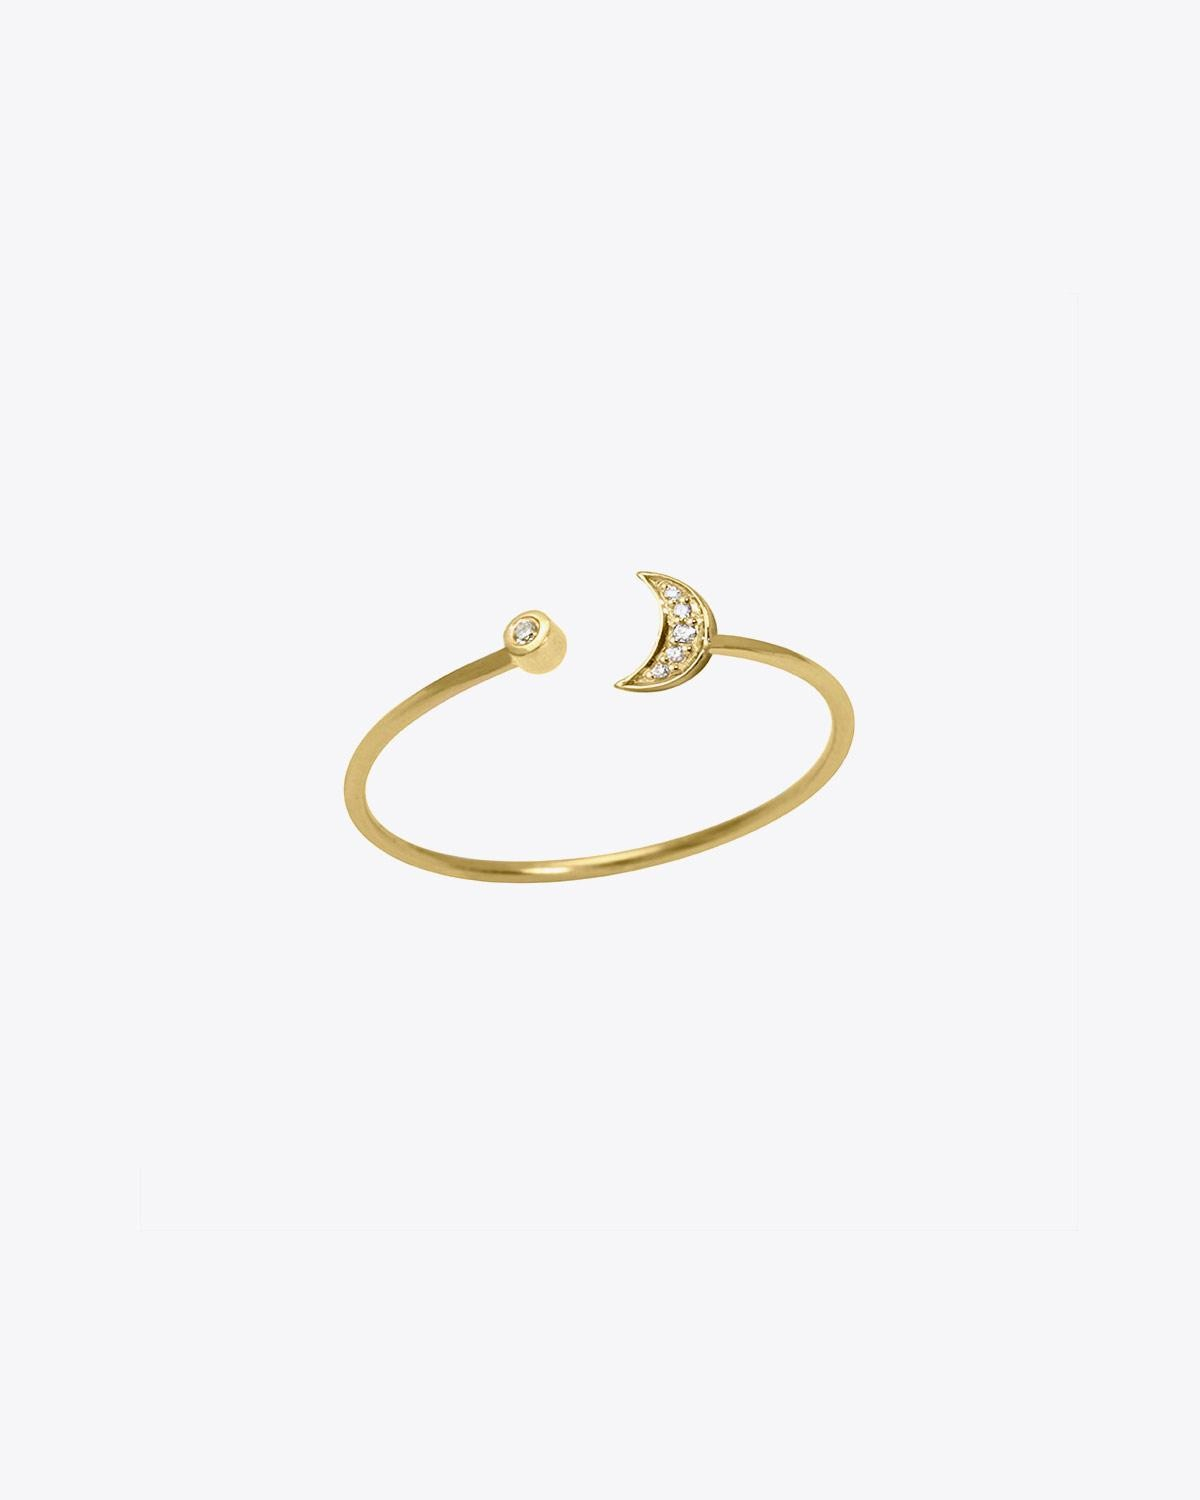 Feidt Bague Lune ouverte In the Moon for love - Or jaune 18k, Diamants